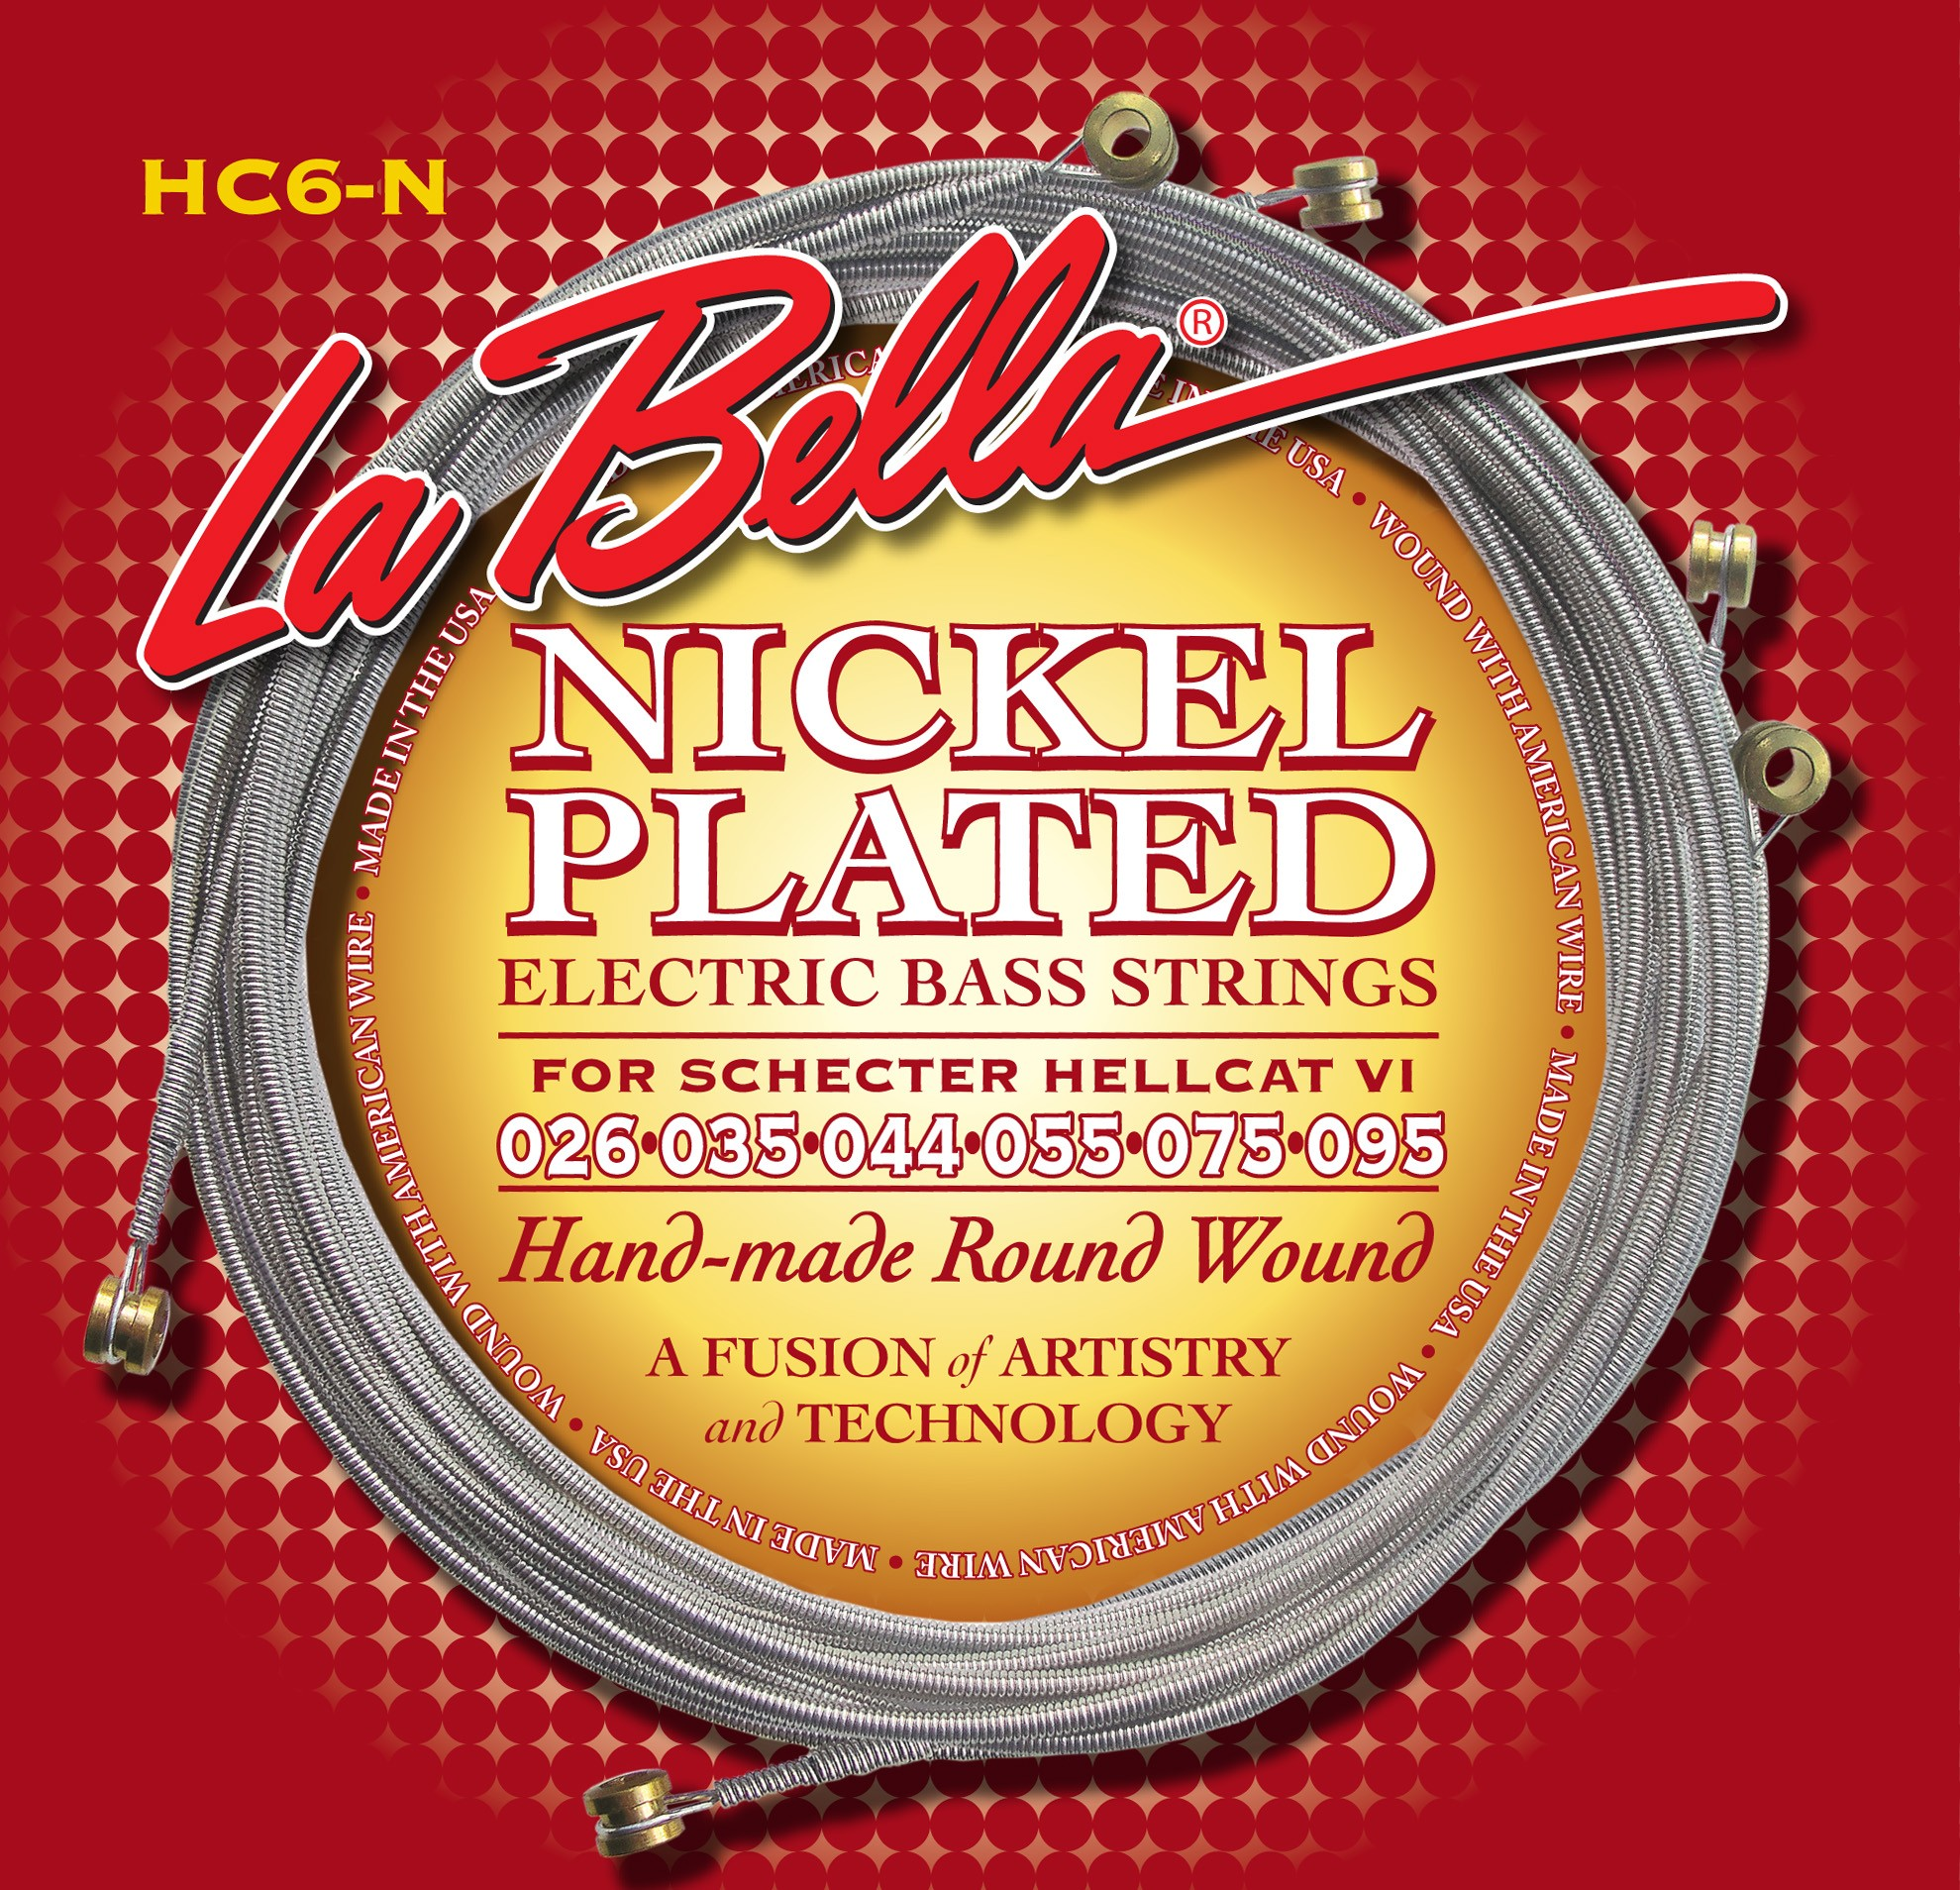 La Bella Electric Guitar Strings - Hellcat VI Baritone Series